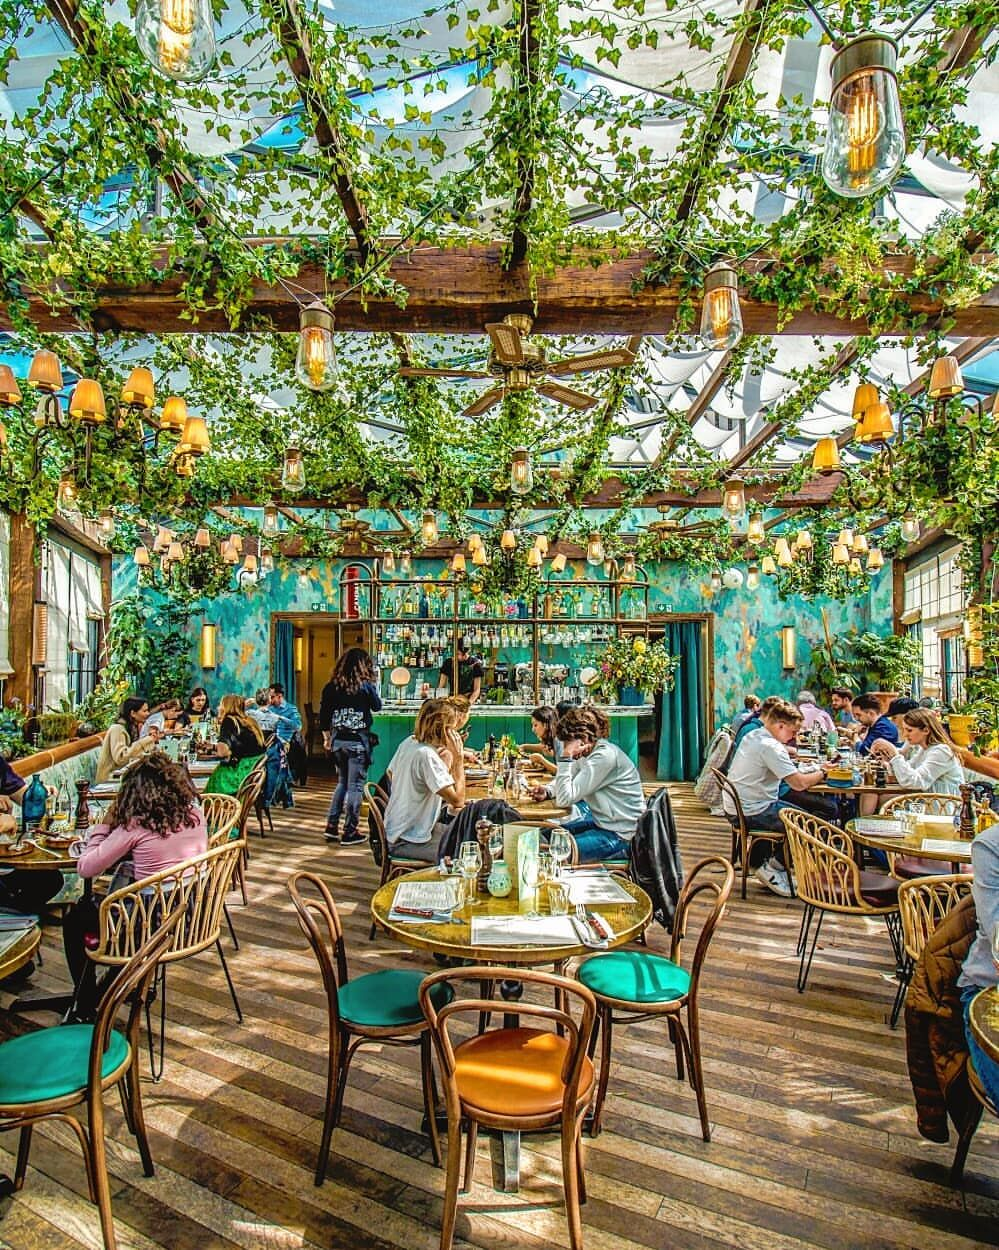 Can You Believe This Cute Spots Are From A Restaurant In The